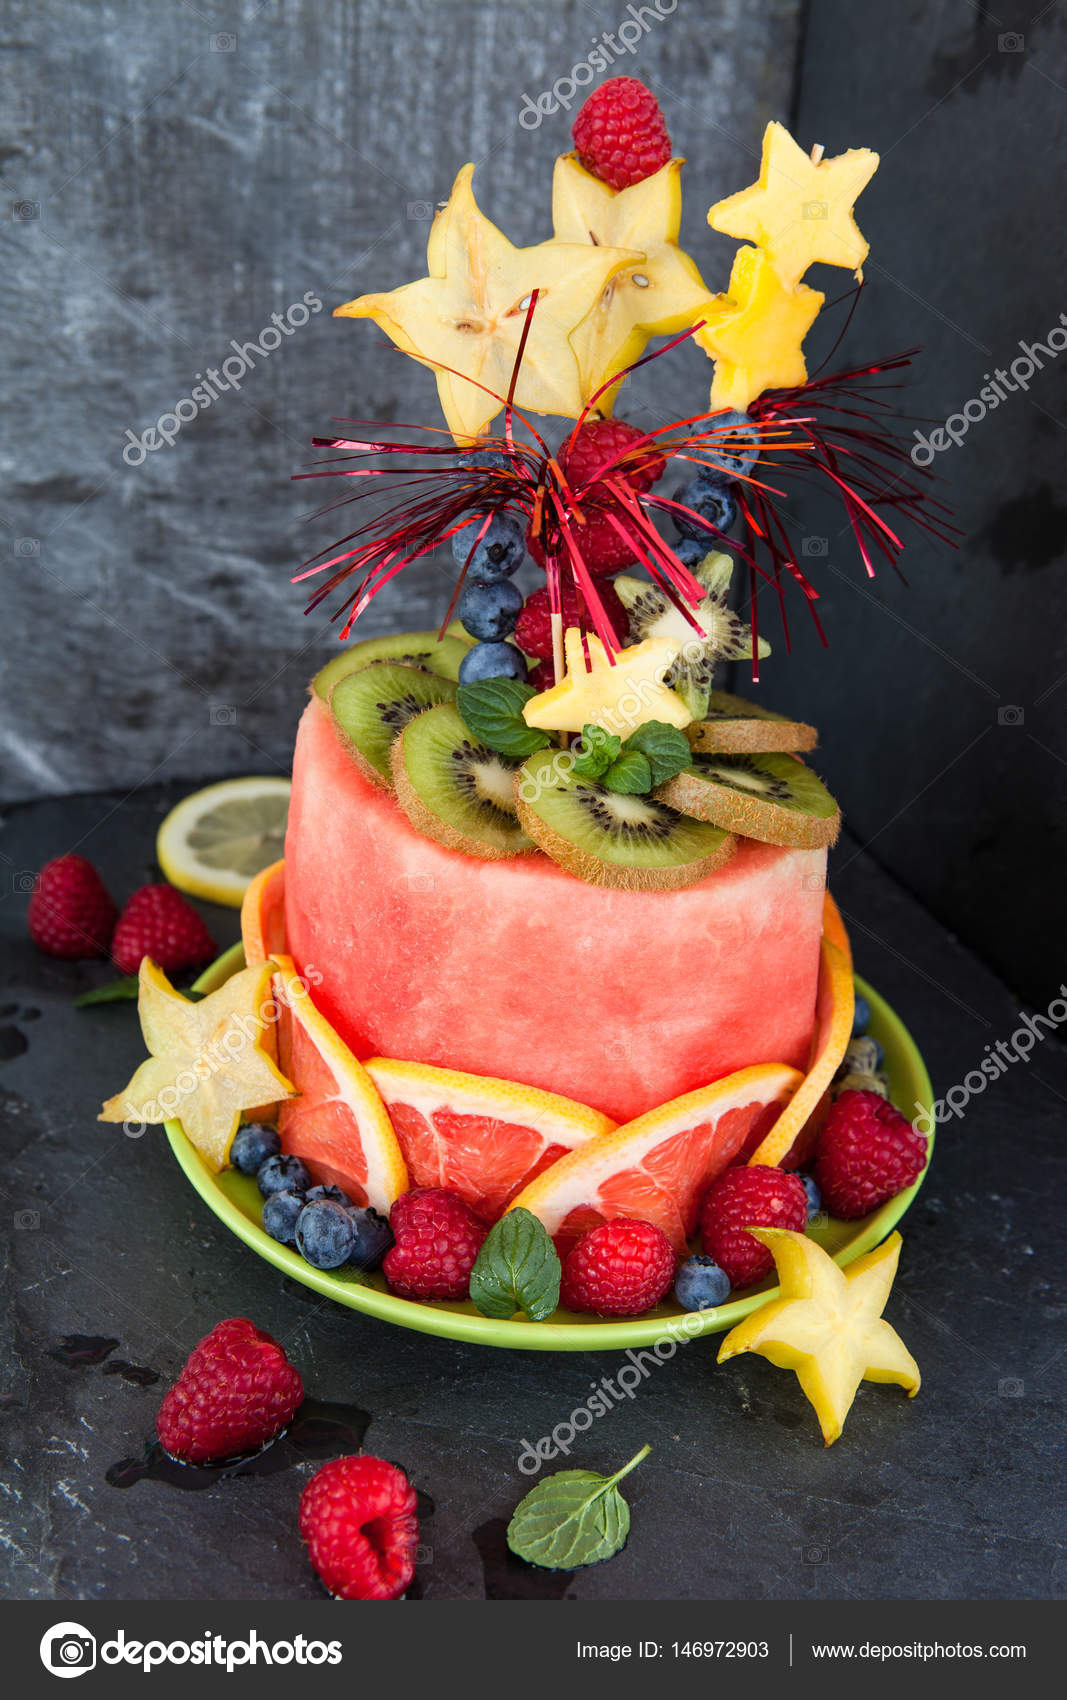 Colorful Cake Made From Fresh Fruits With Party Decorations Photo By